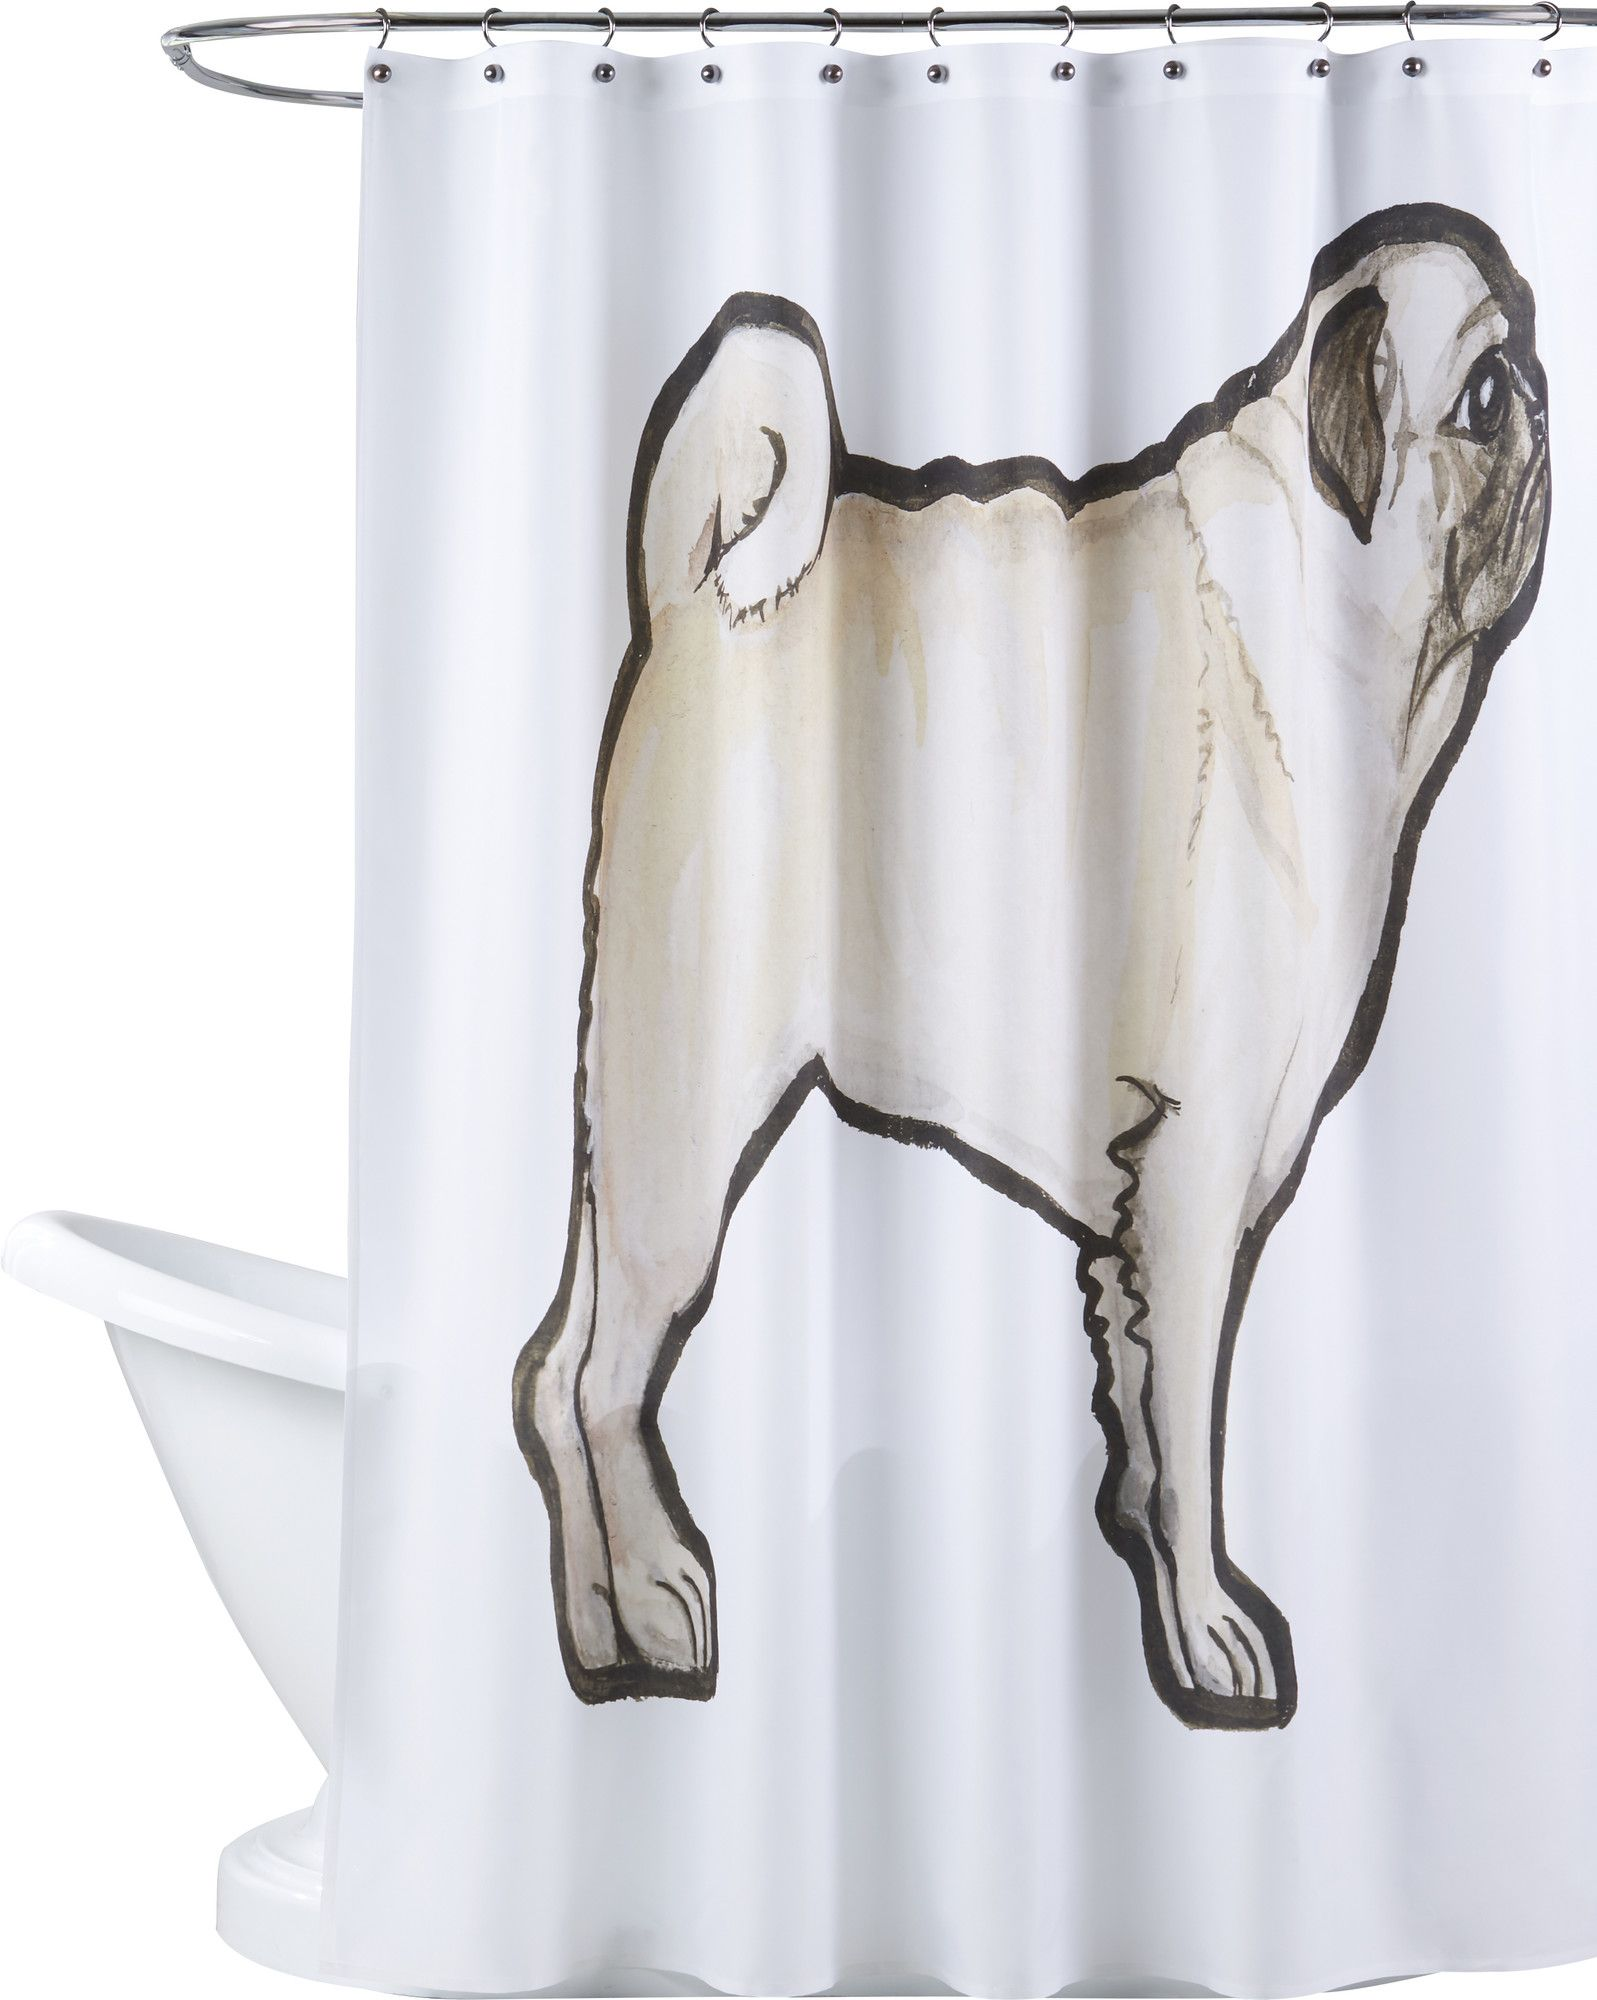 Gauvin Pug Shower Curtain Shower Curtain Curtains Contemporary